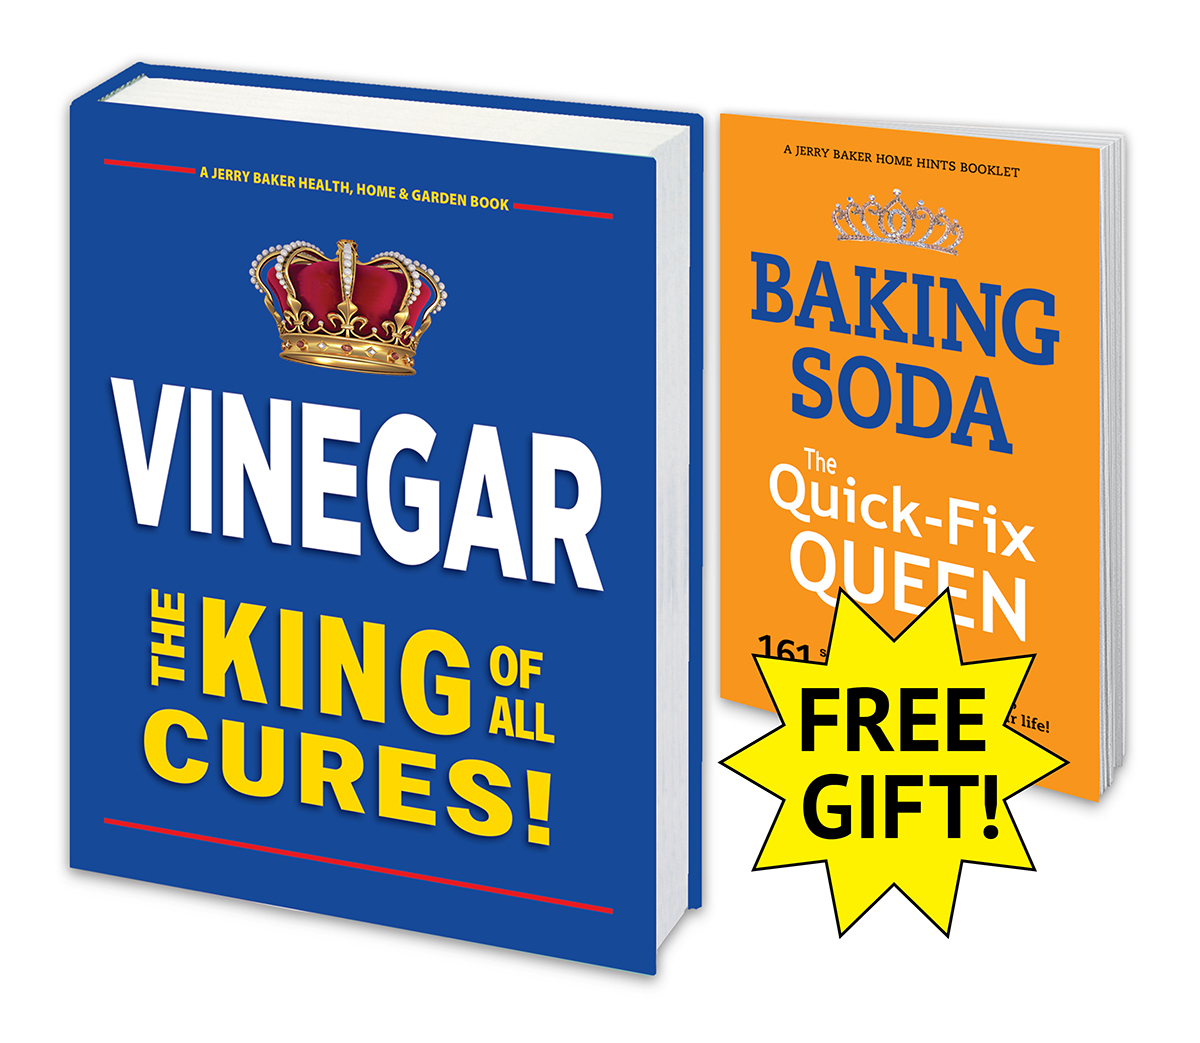 Vinegar: The King of All Cures!